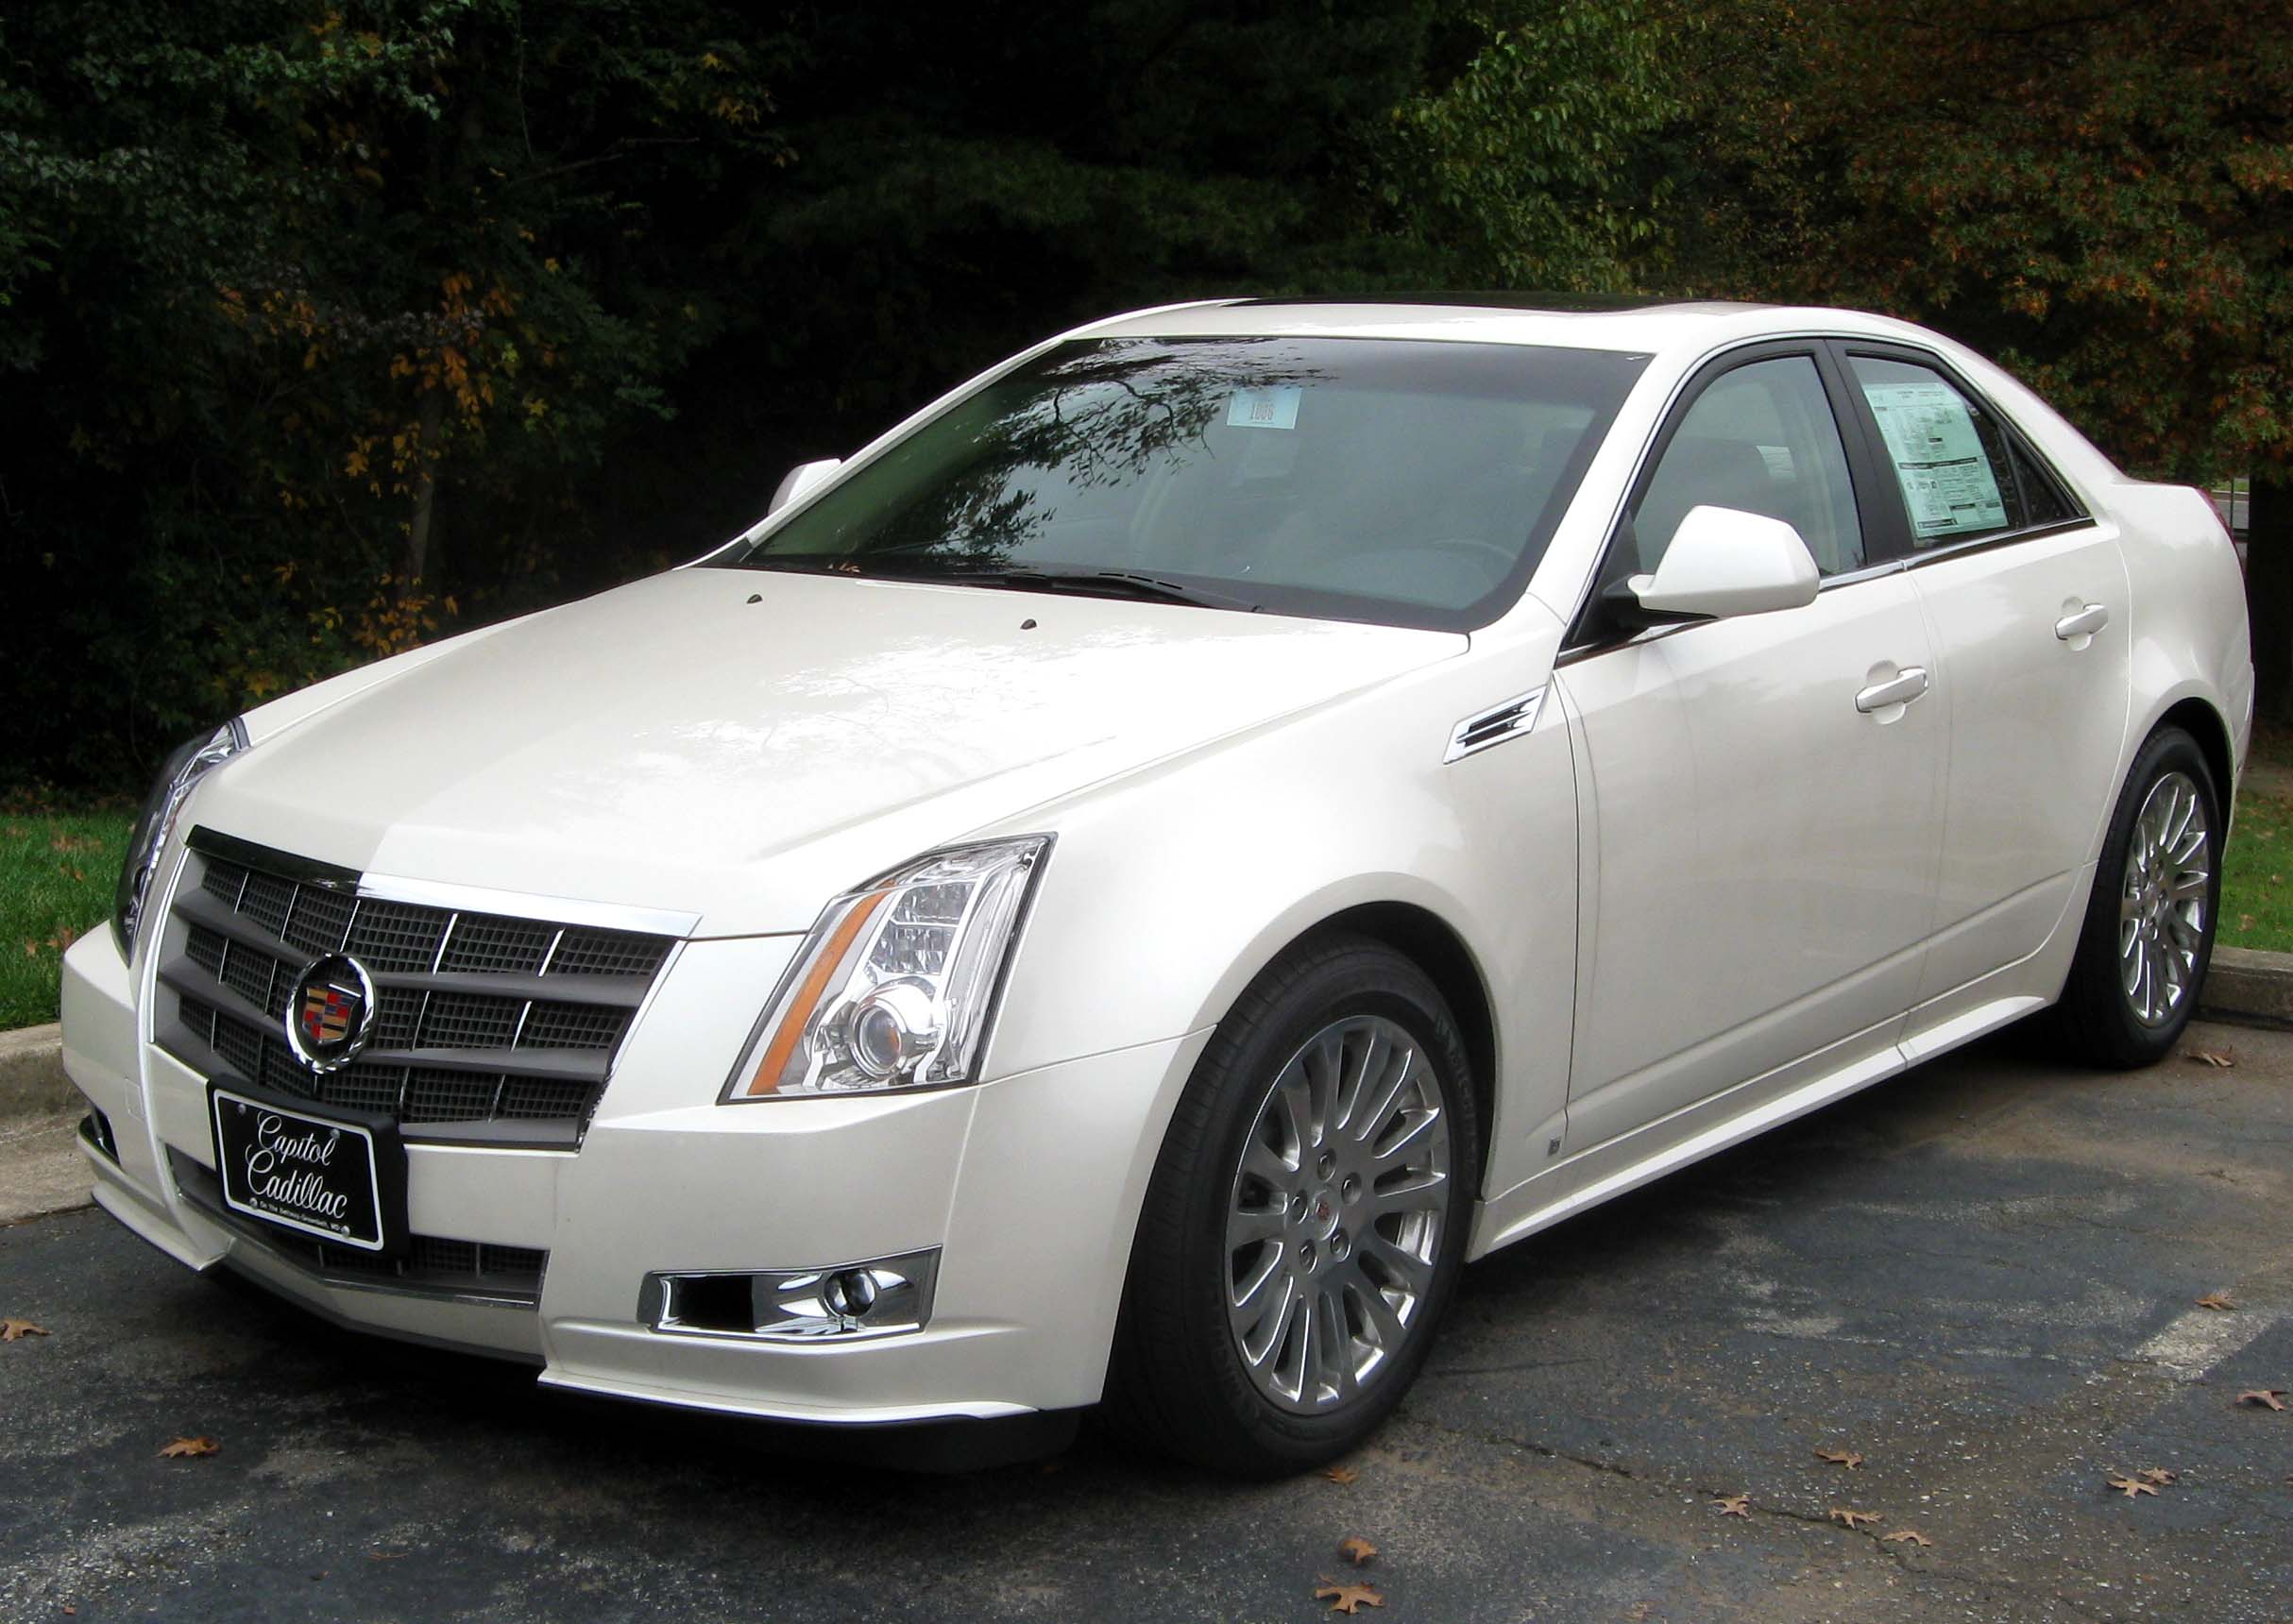 cadillac cts pictures #1